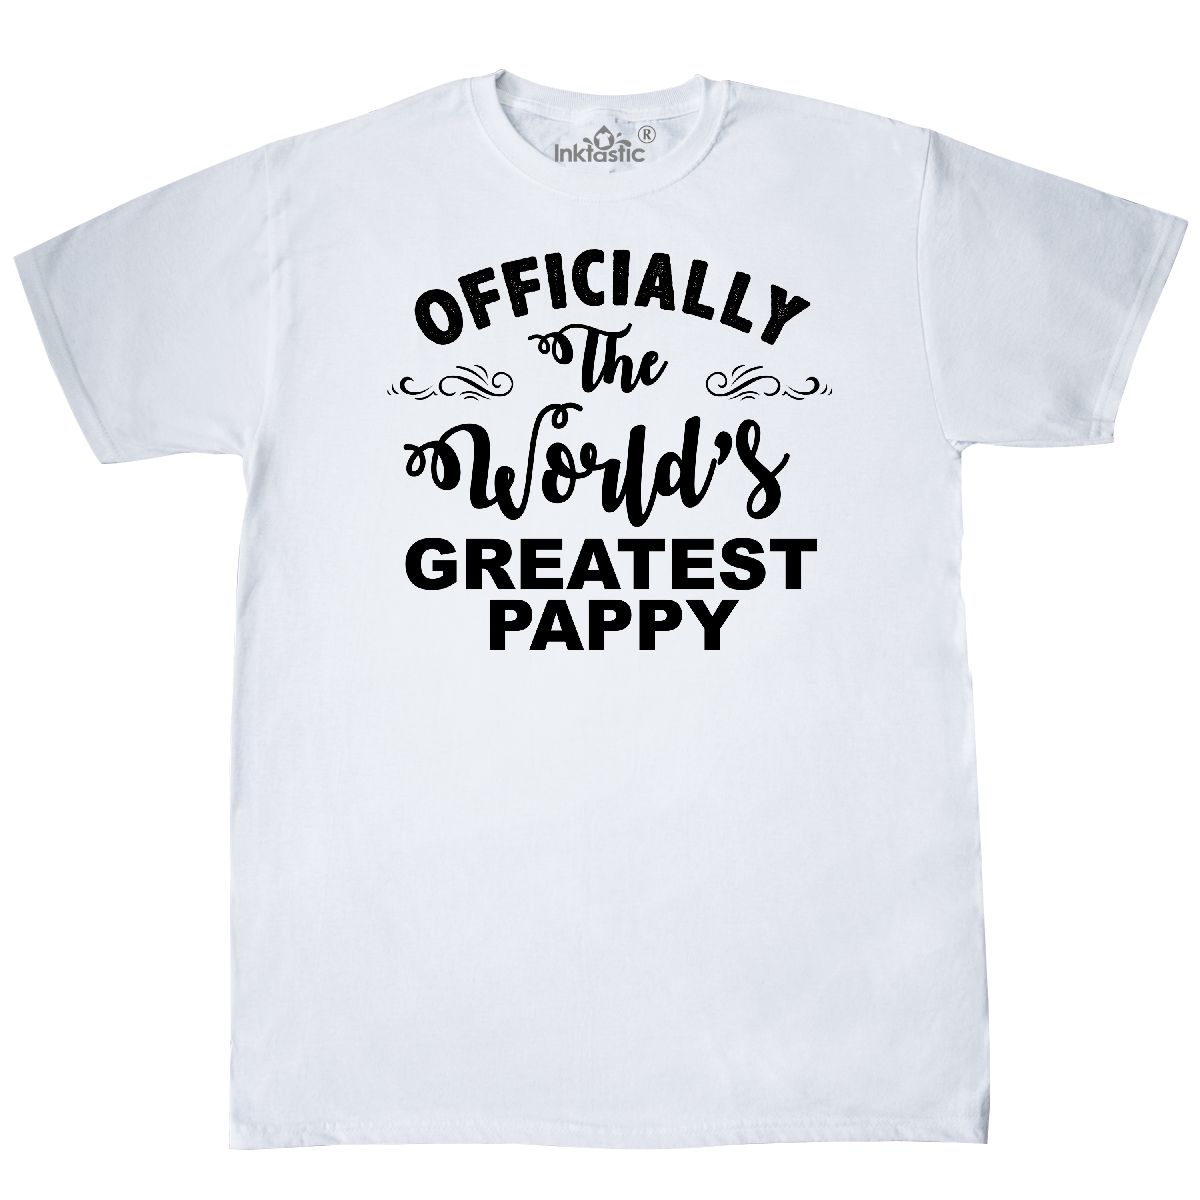 5529af4dc Inktastic Officially The World's Greatest Pappy T-Shirt Best Mens ...